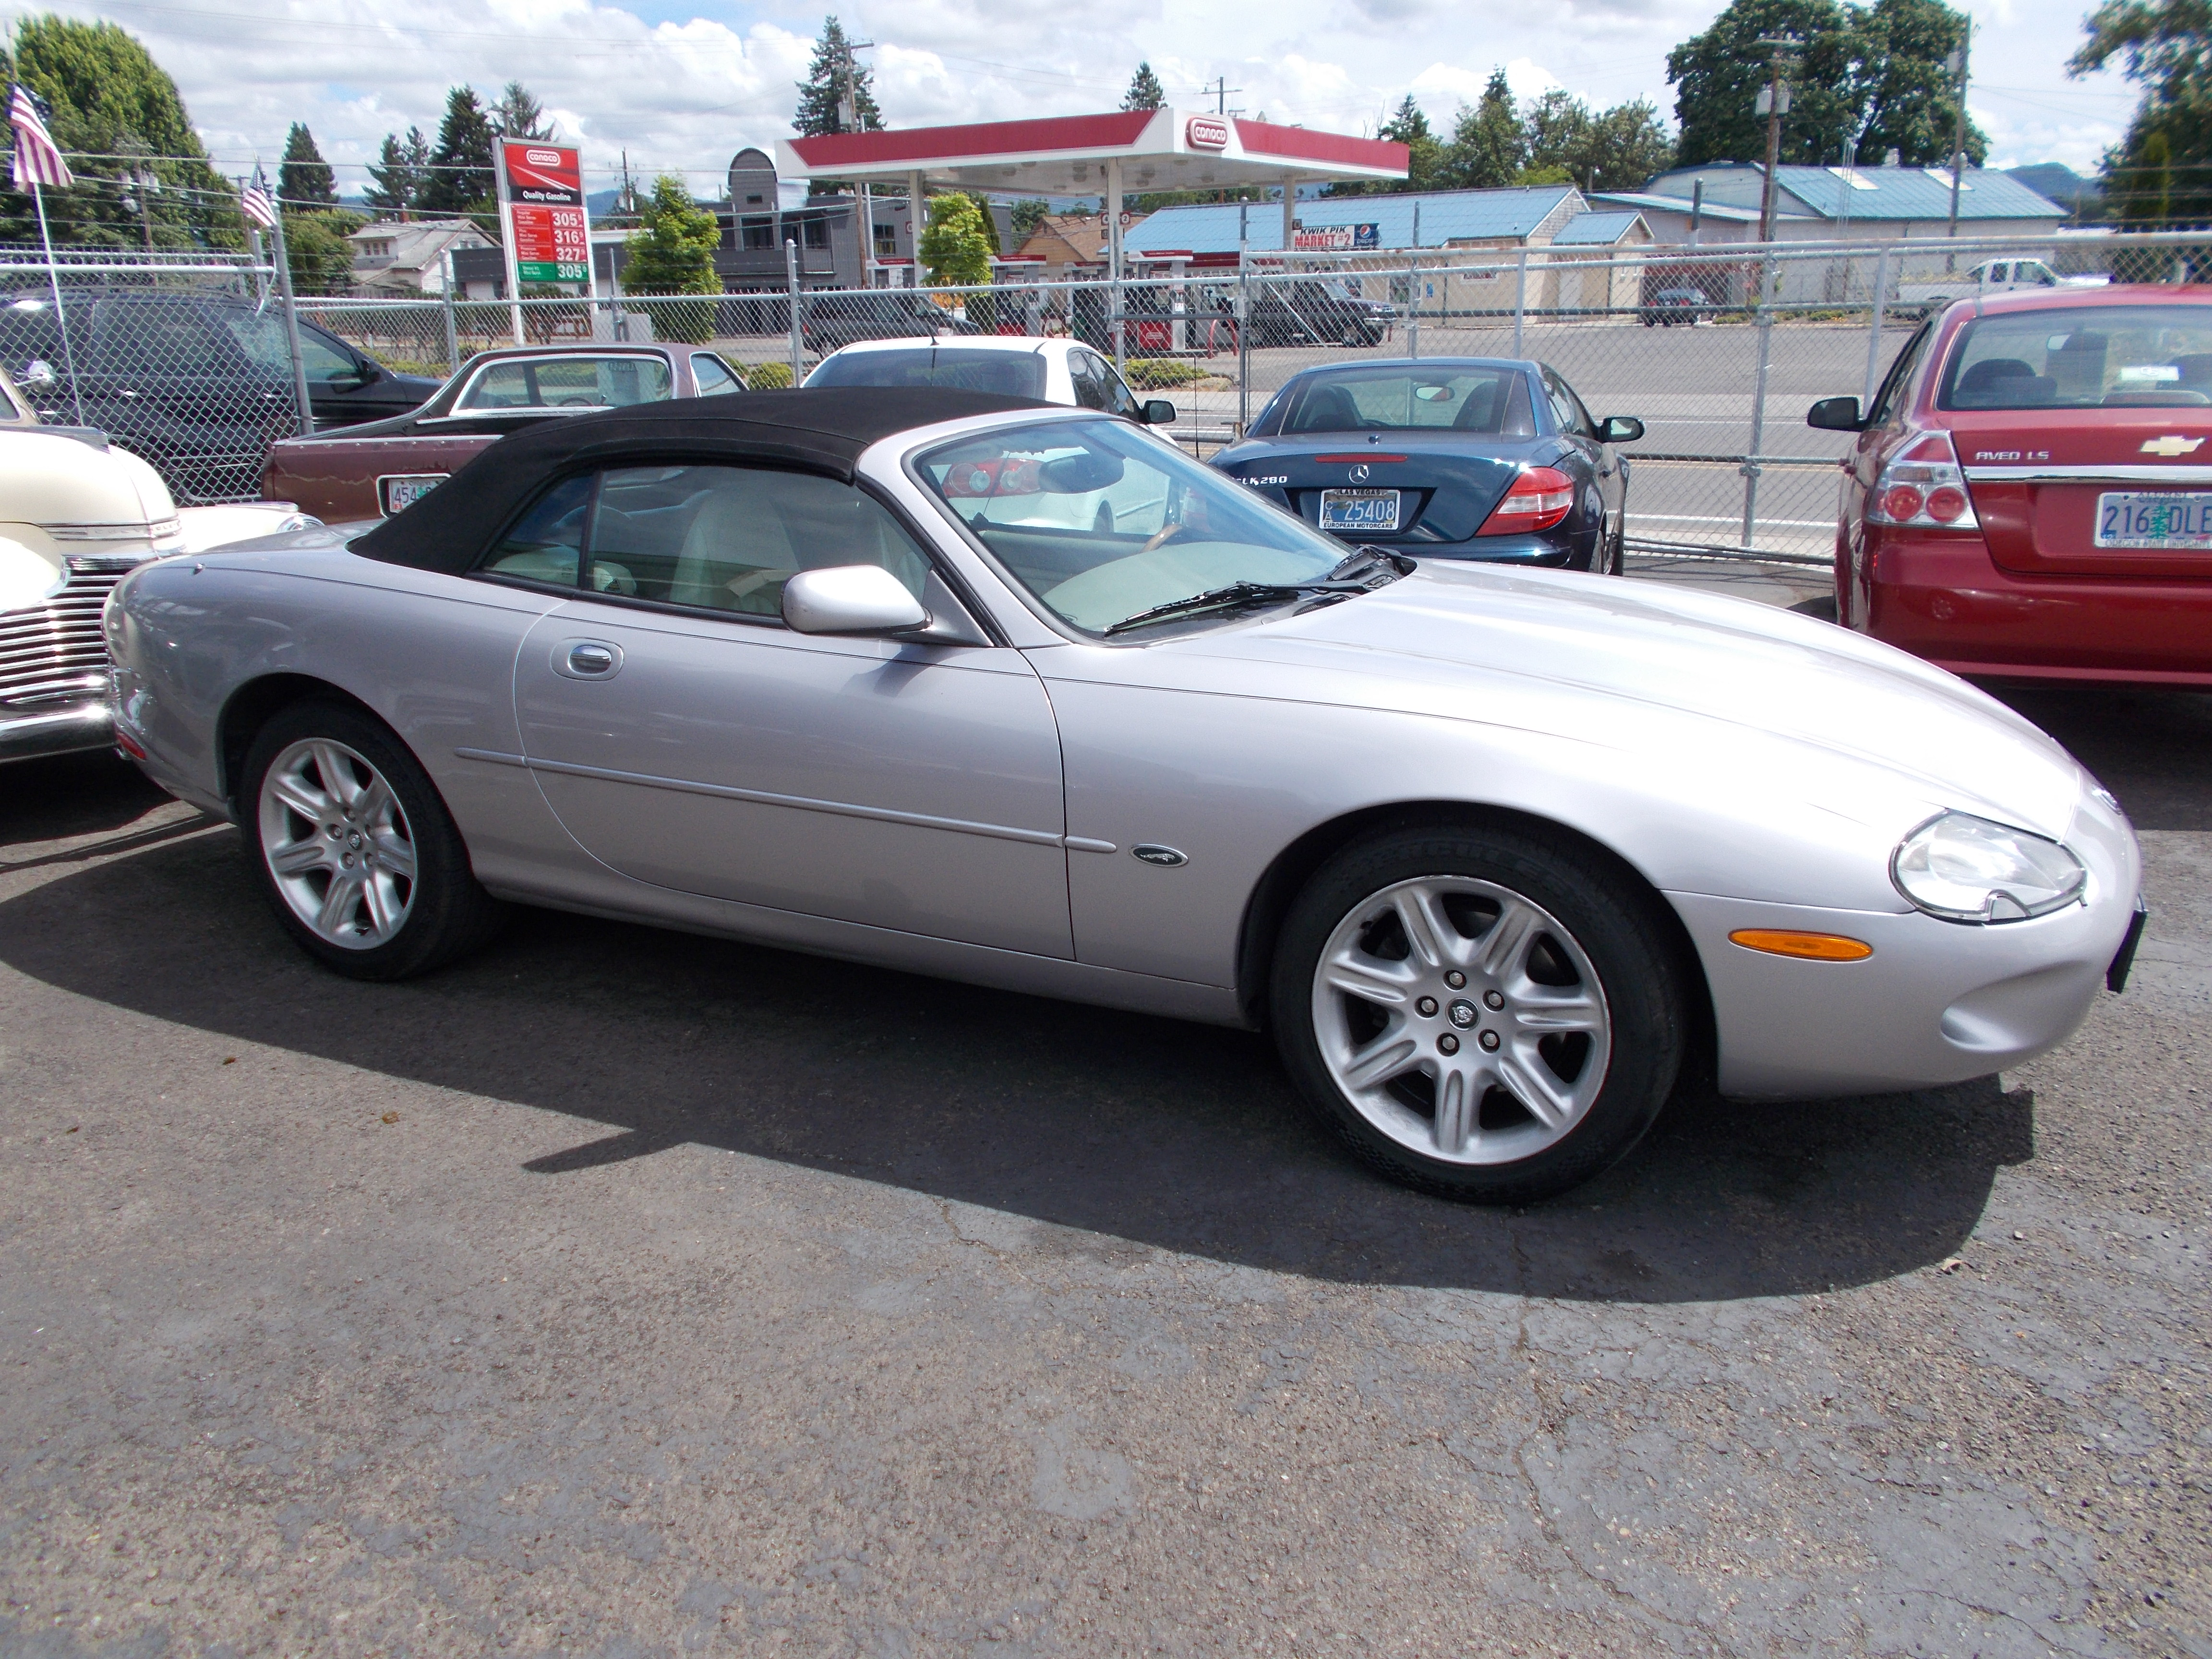 Index of /images/2000 jag conv XK8 silver